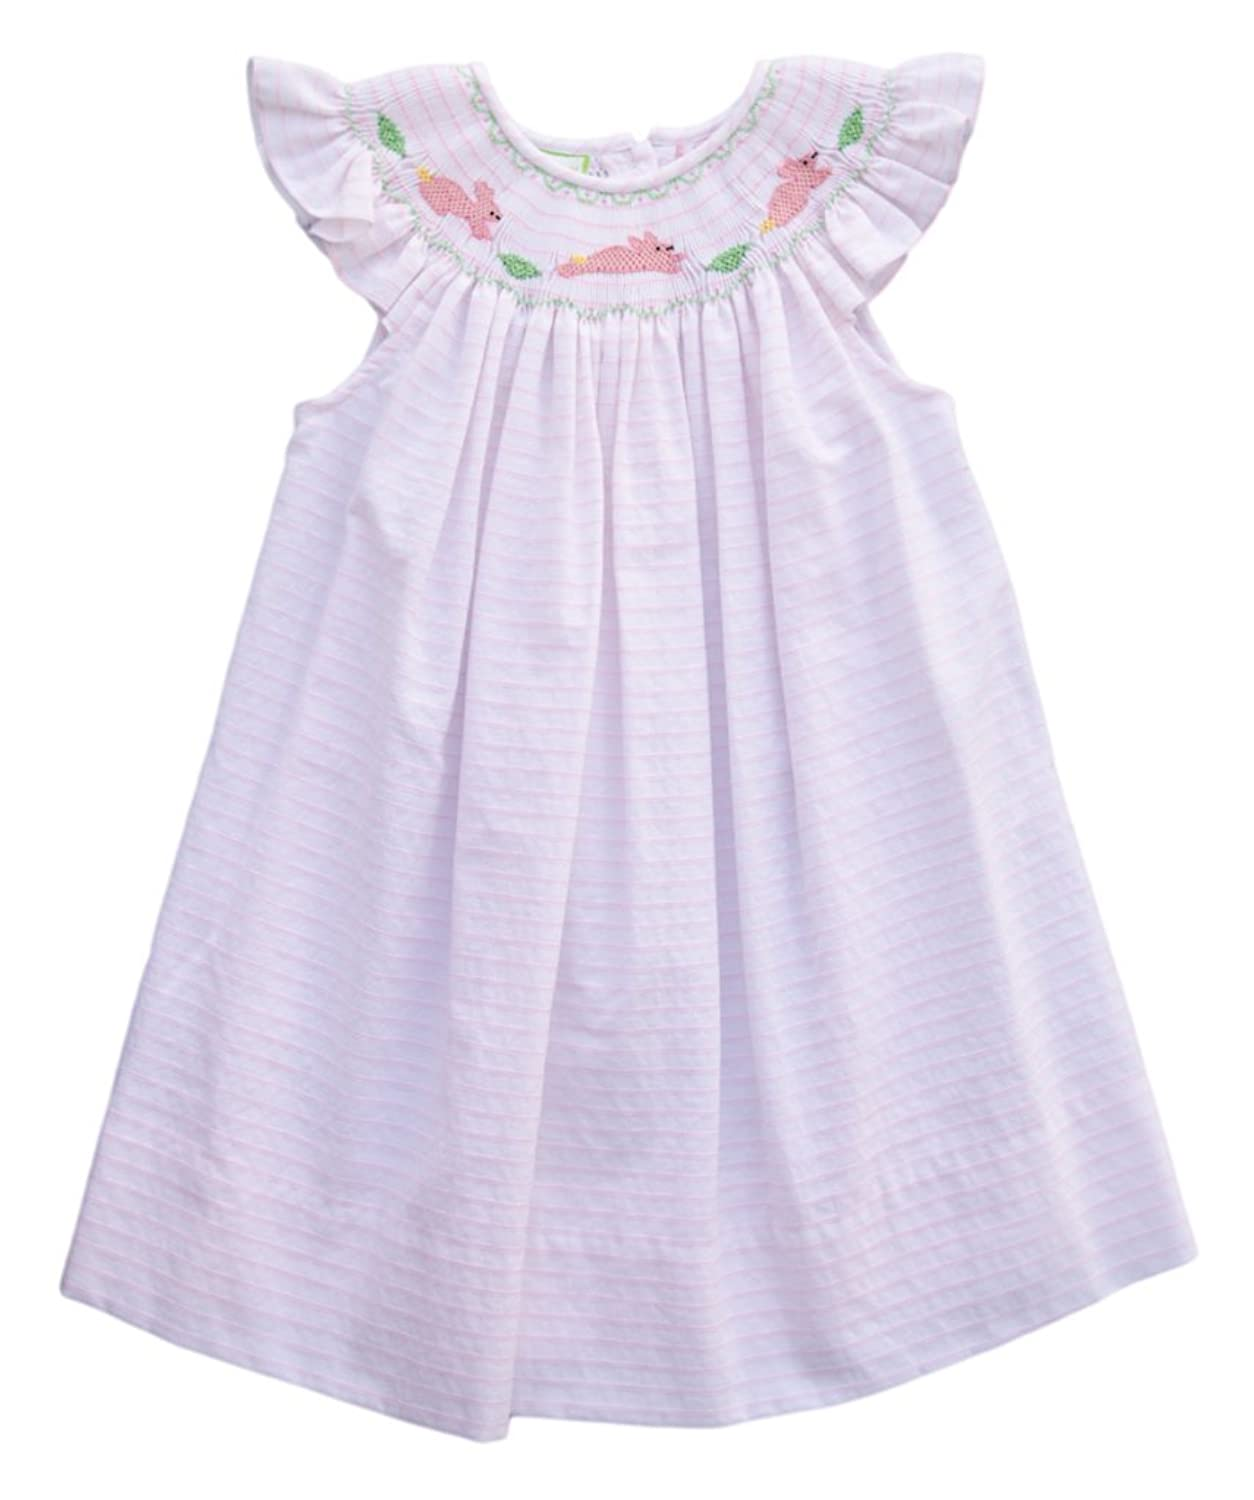 444677af8 Little Threads Bunny Bishop Smocked Dress - 2T Smocked Dress Bunny  Embroidered, Smocked Collar and Ruffled Sleeves Carouselwear Baby Girls  Easter ...